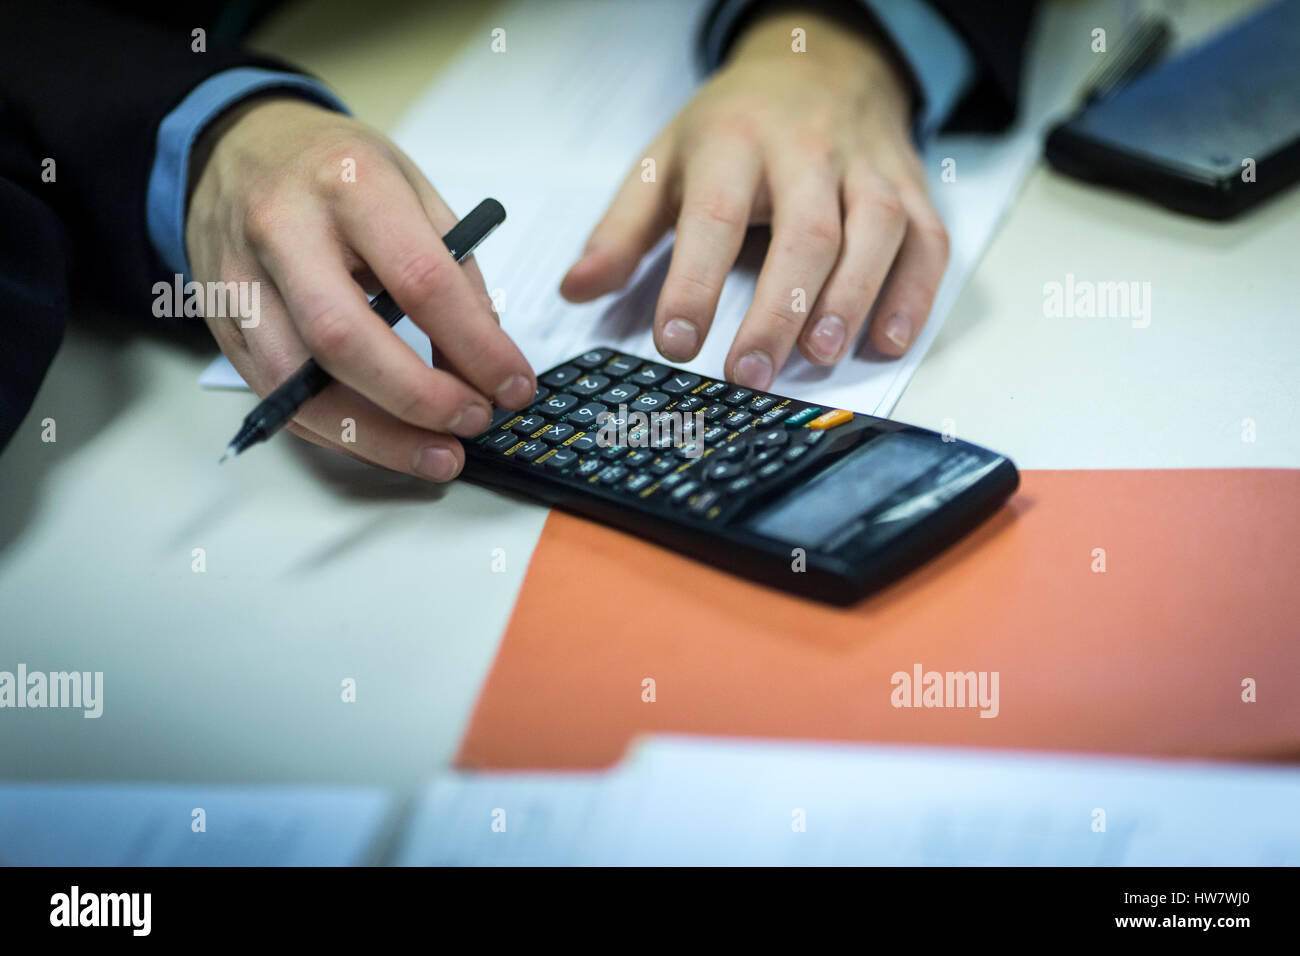 a male pupil uses a calculator during a lesson - Stock Image